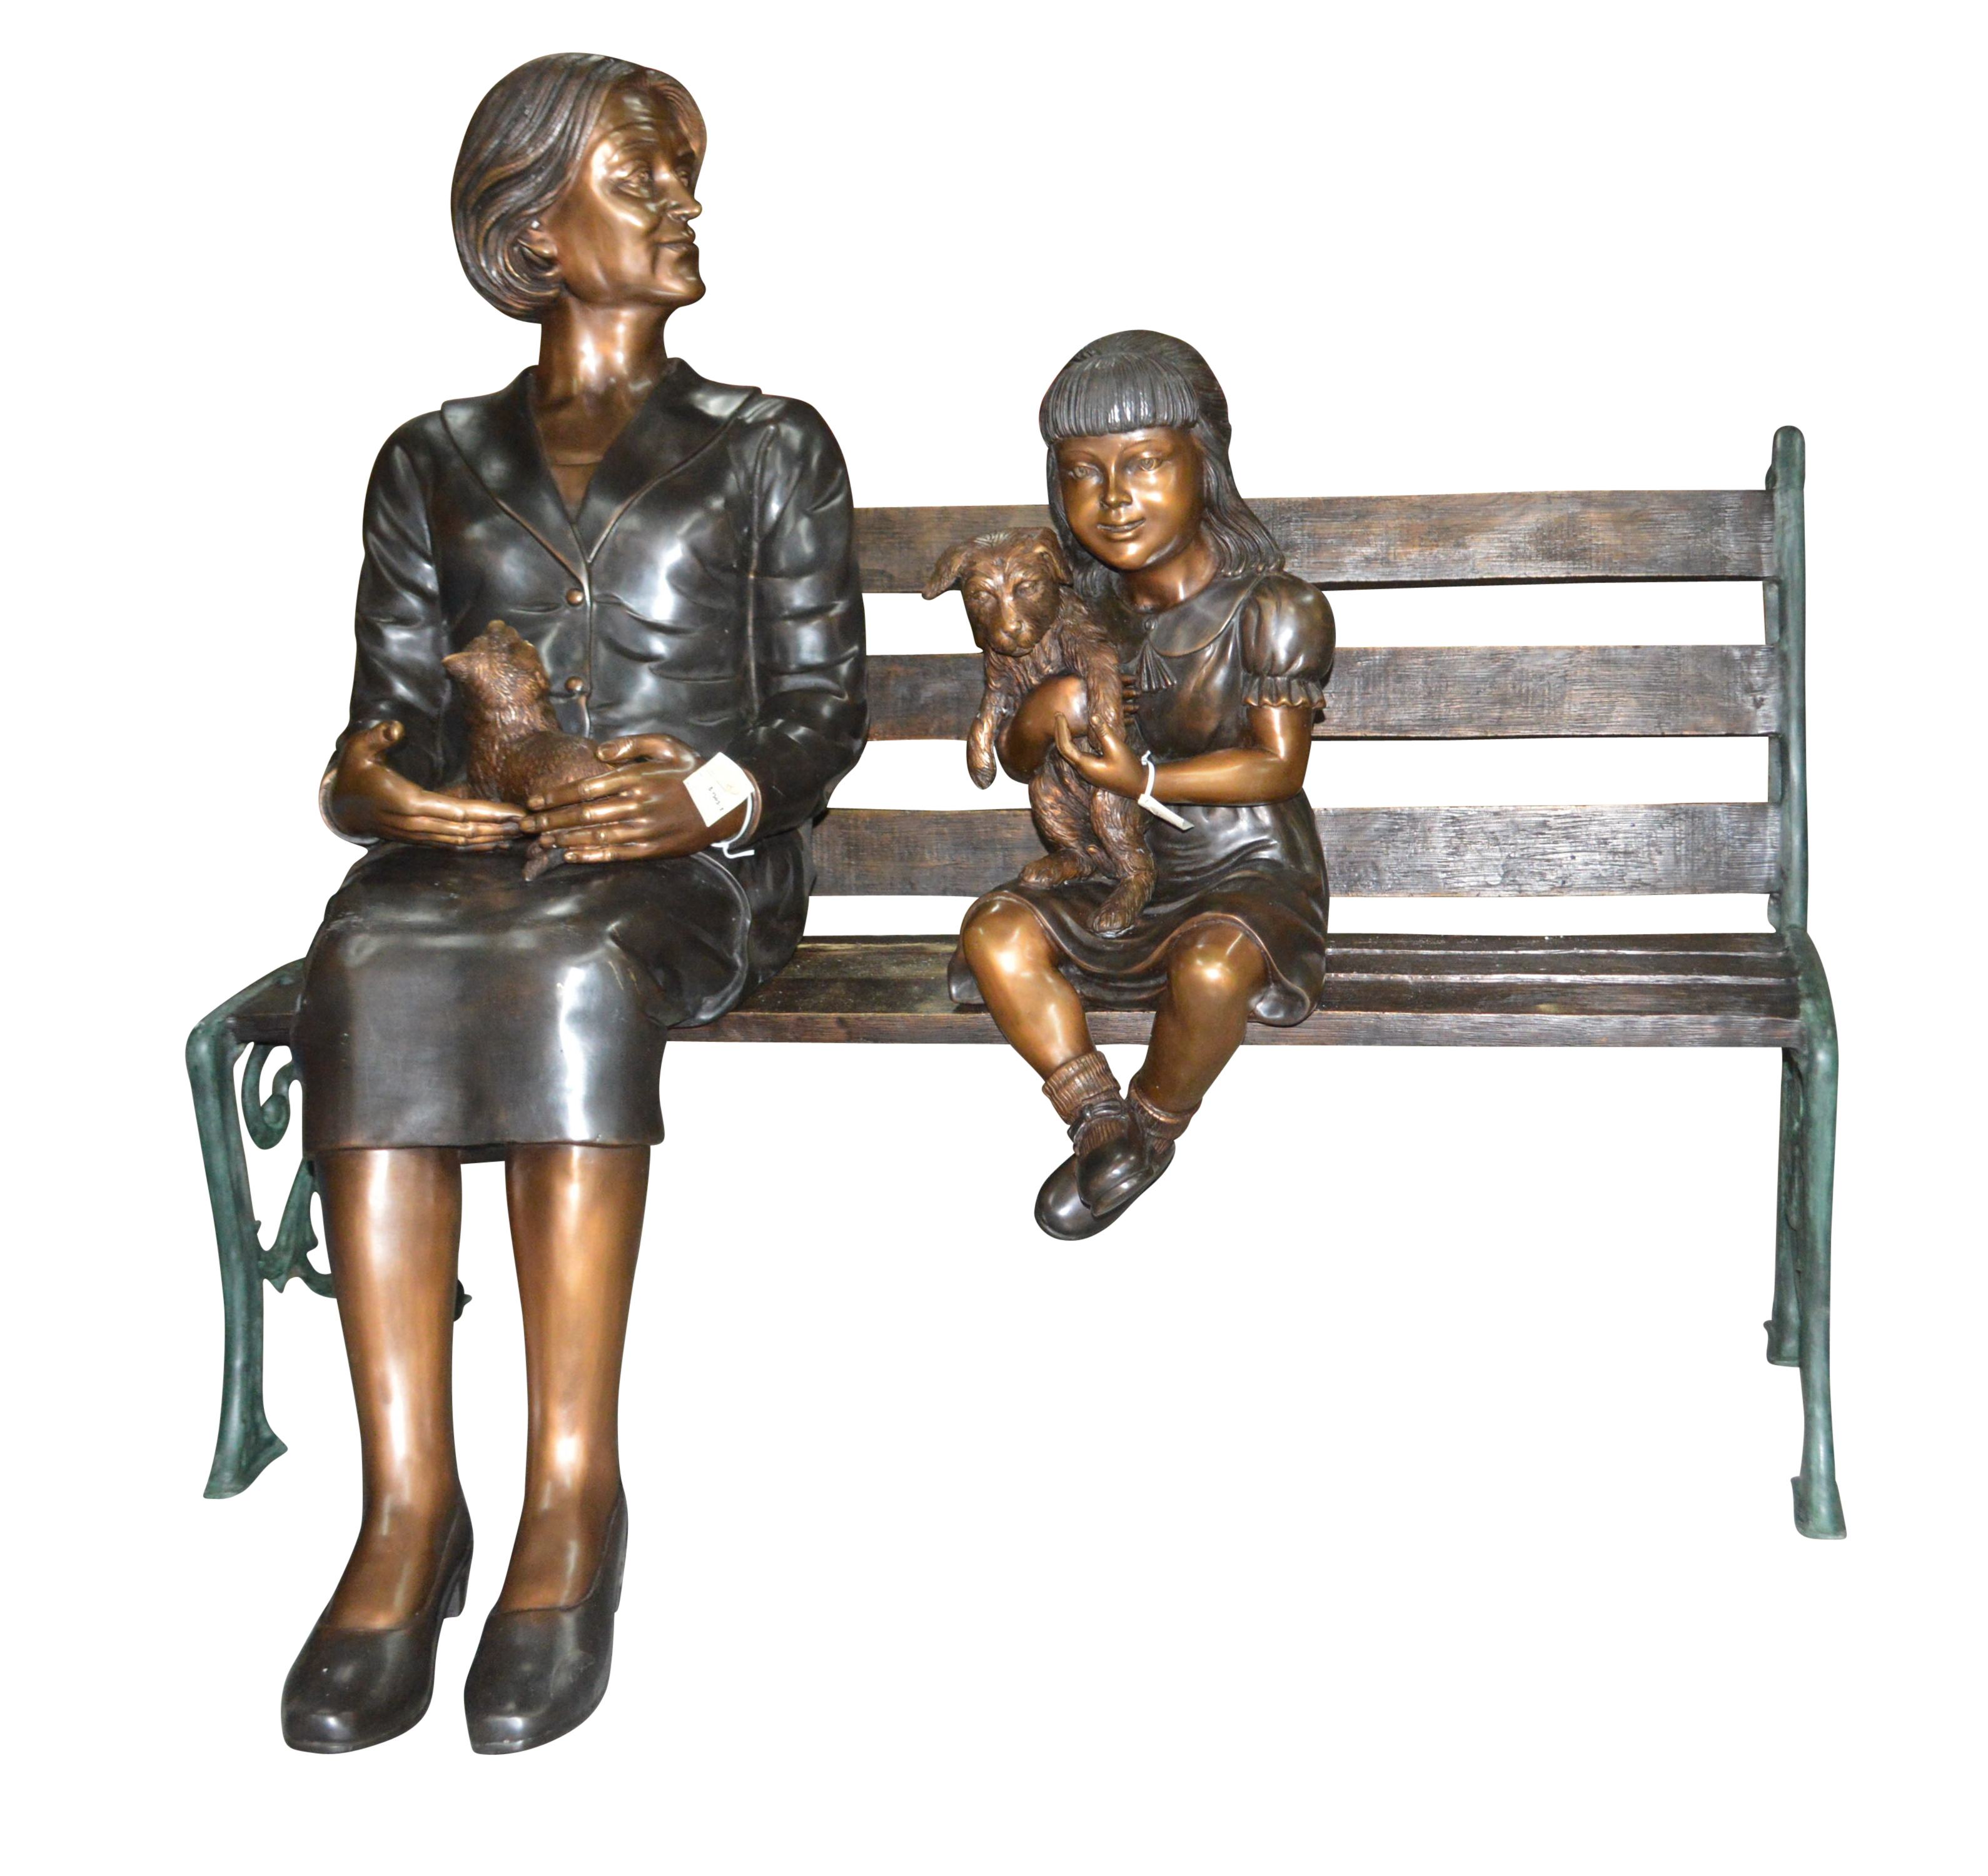 Grandmother And Granddaughter On Bench Statue Size 53 Quot L X 32 Quot W X 44 Quot H Walmart Com Walmart Com